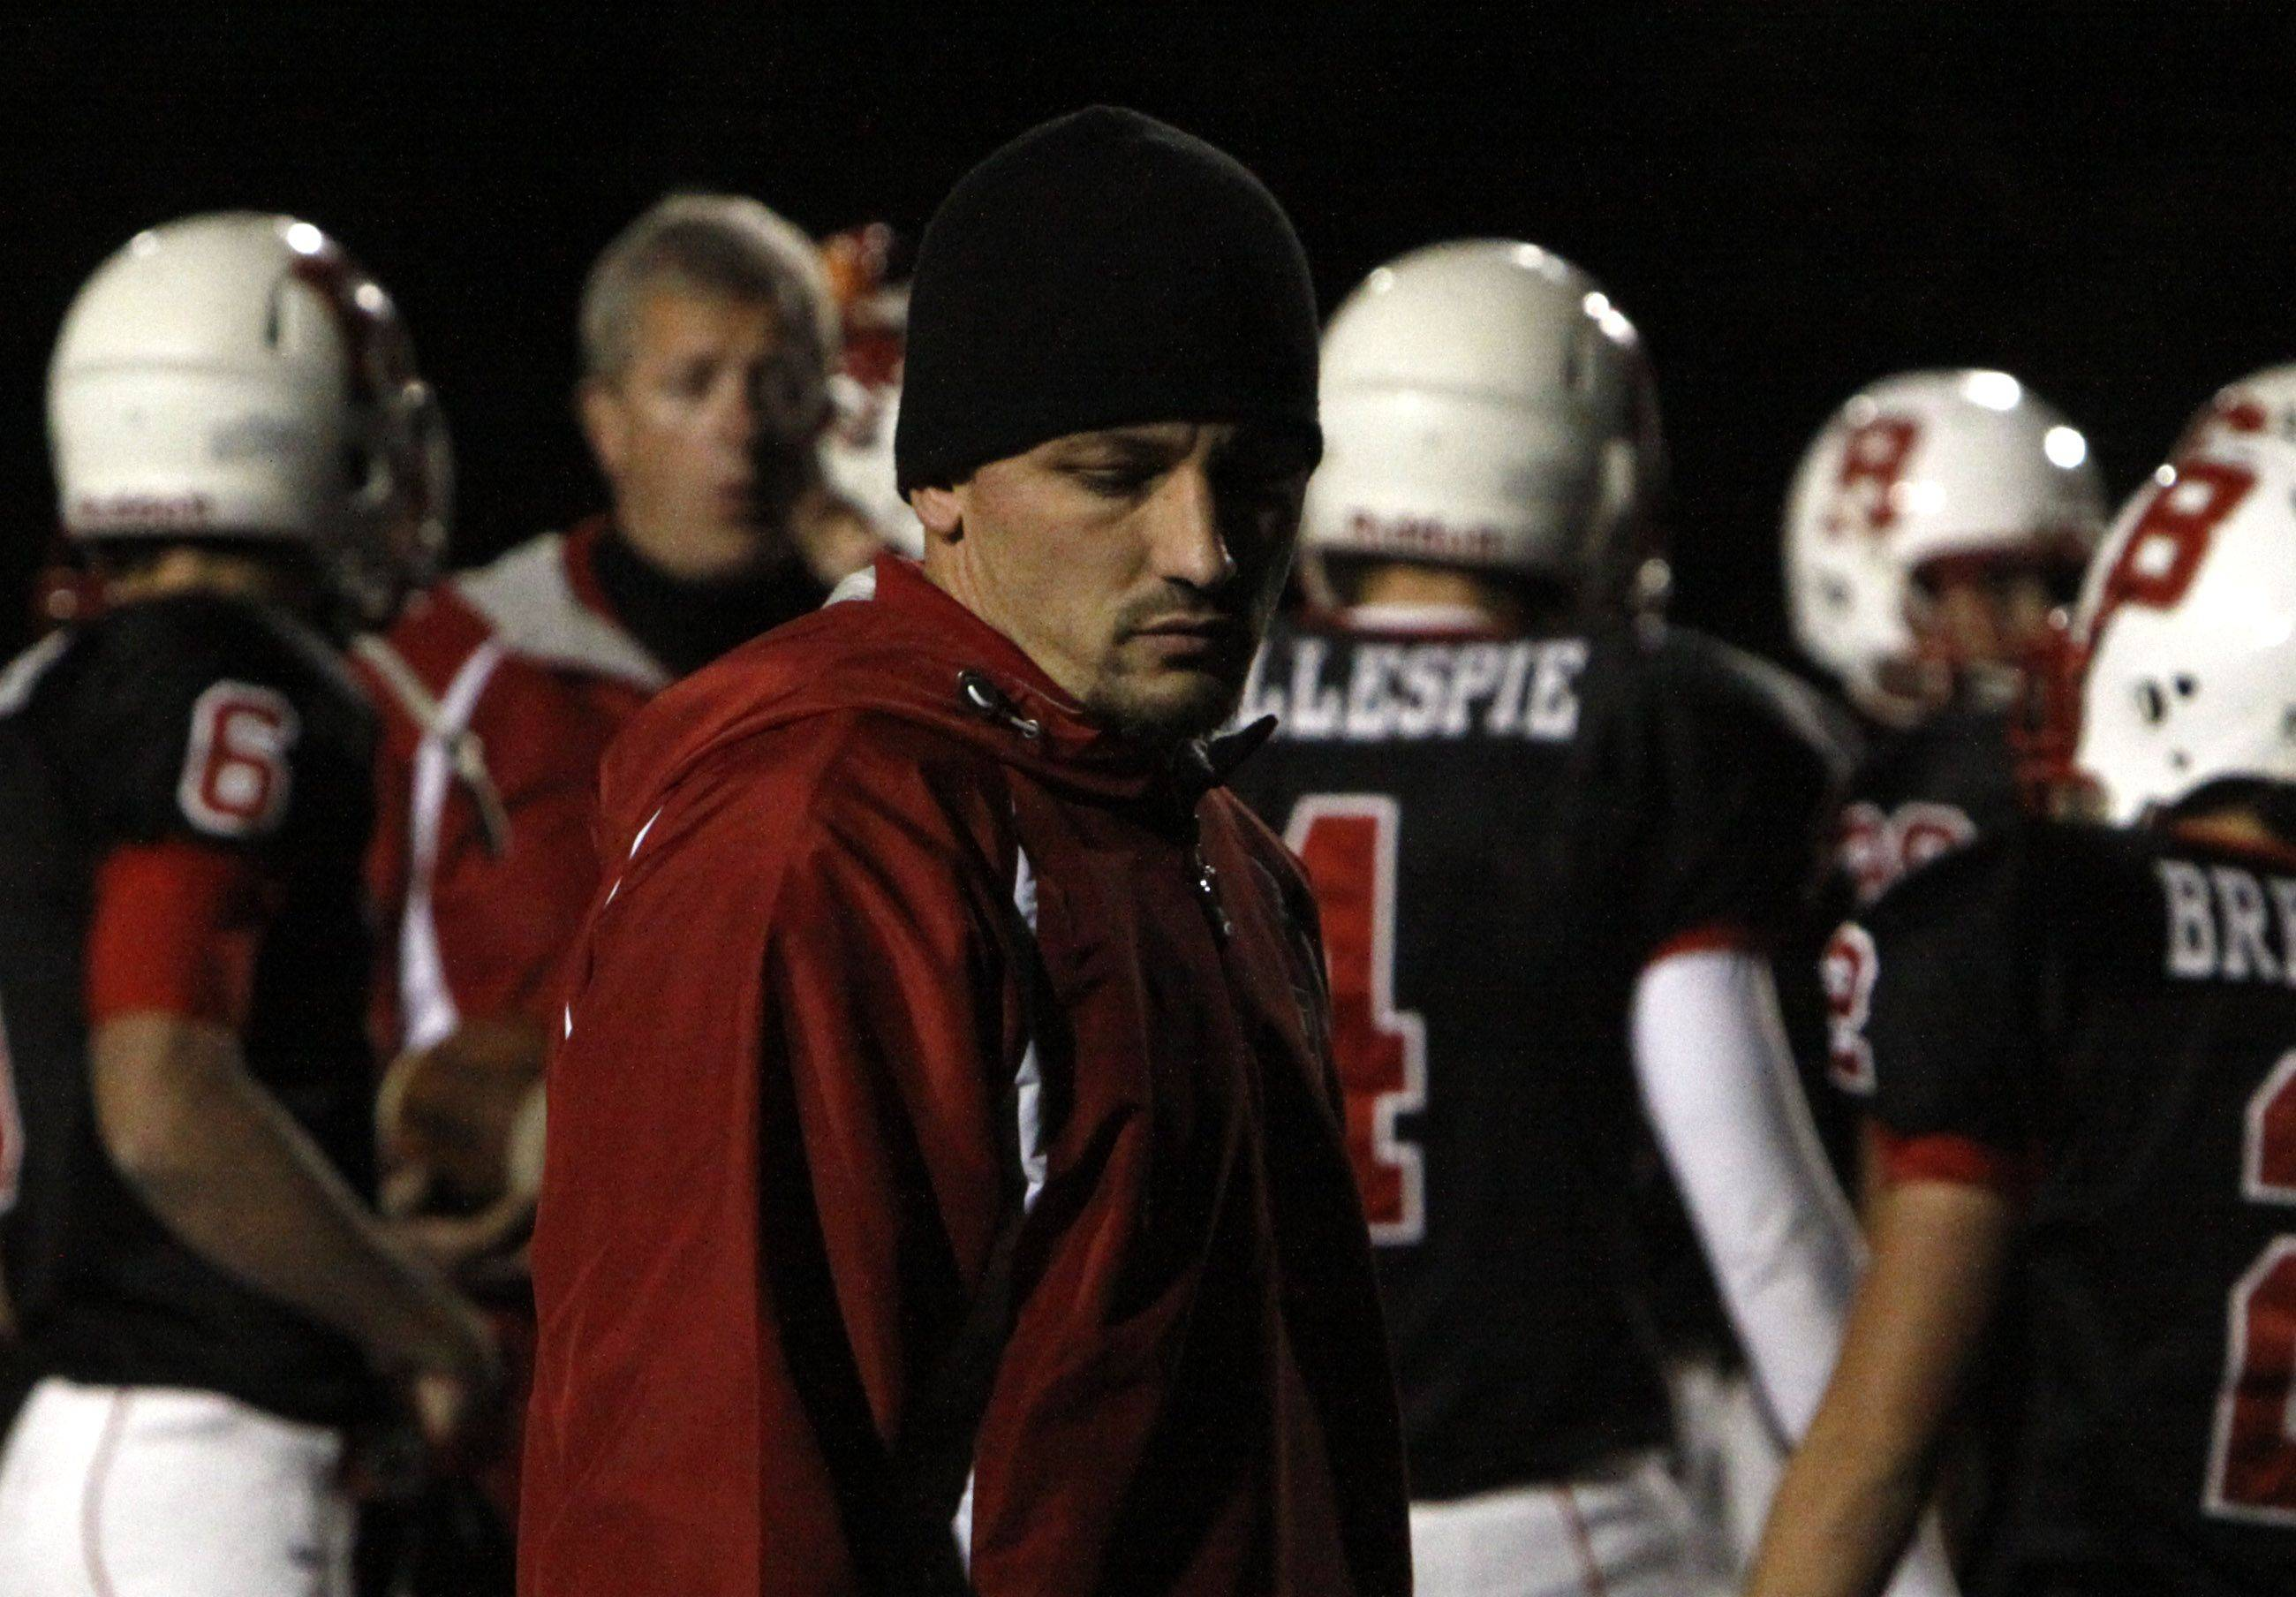 Defensive Coach Brandon New of Benet Academy during the game against Joliet Catholic Academy Thursday night in Lisle.